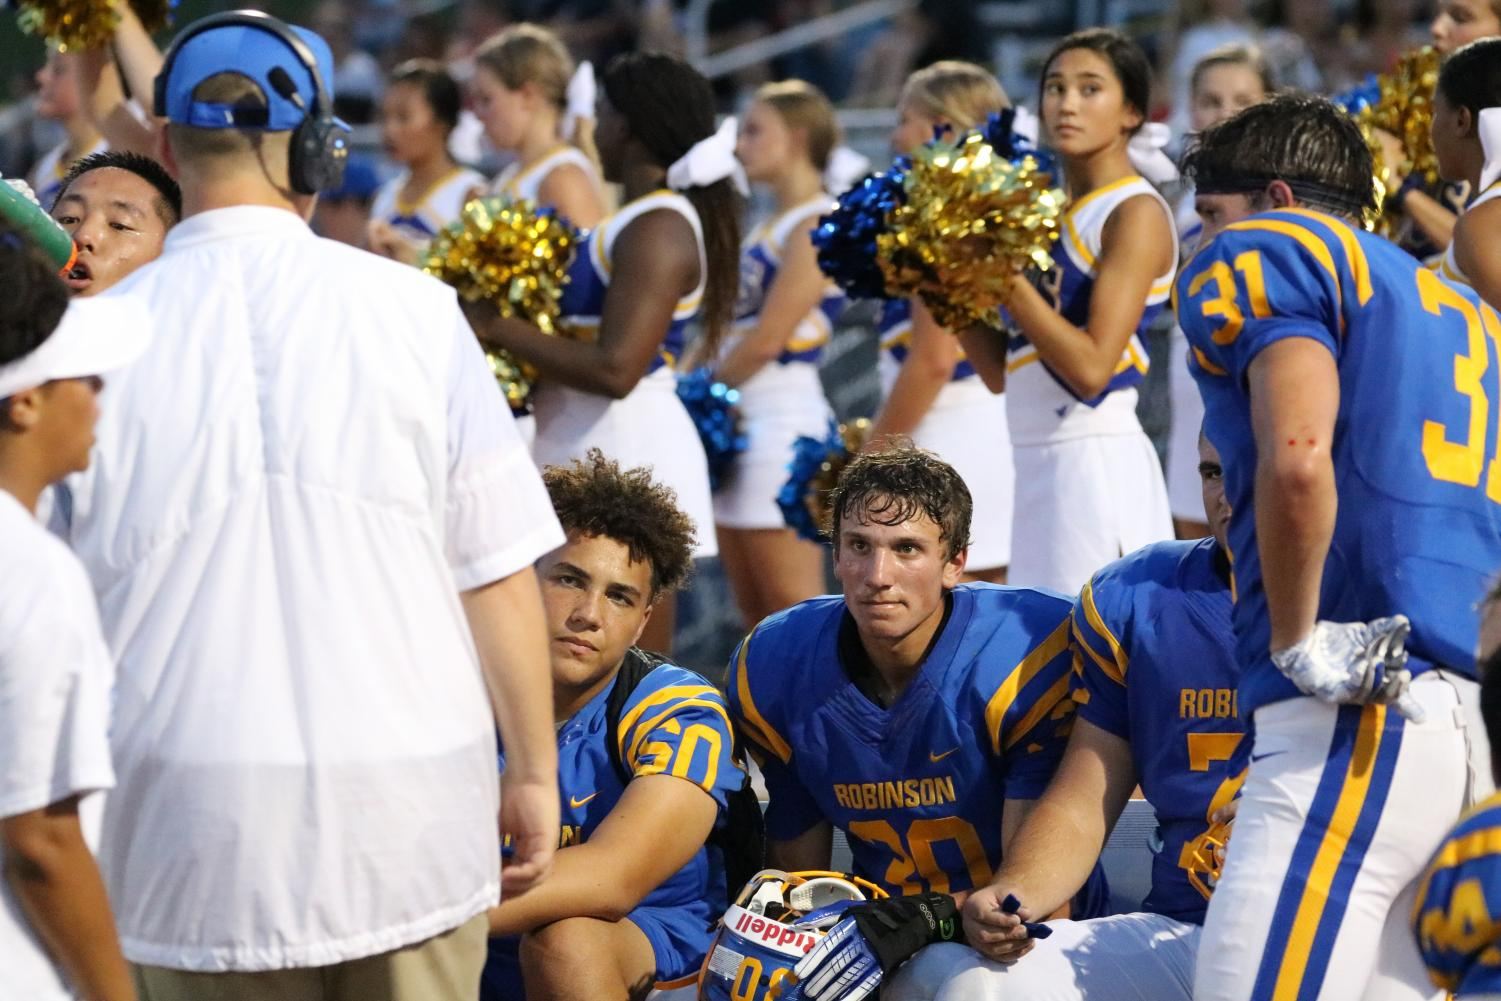 Robinson varsity football players gather on the sidelines during their win against Chantilly on August 31. Photo by Thomas Redifer.